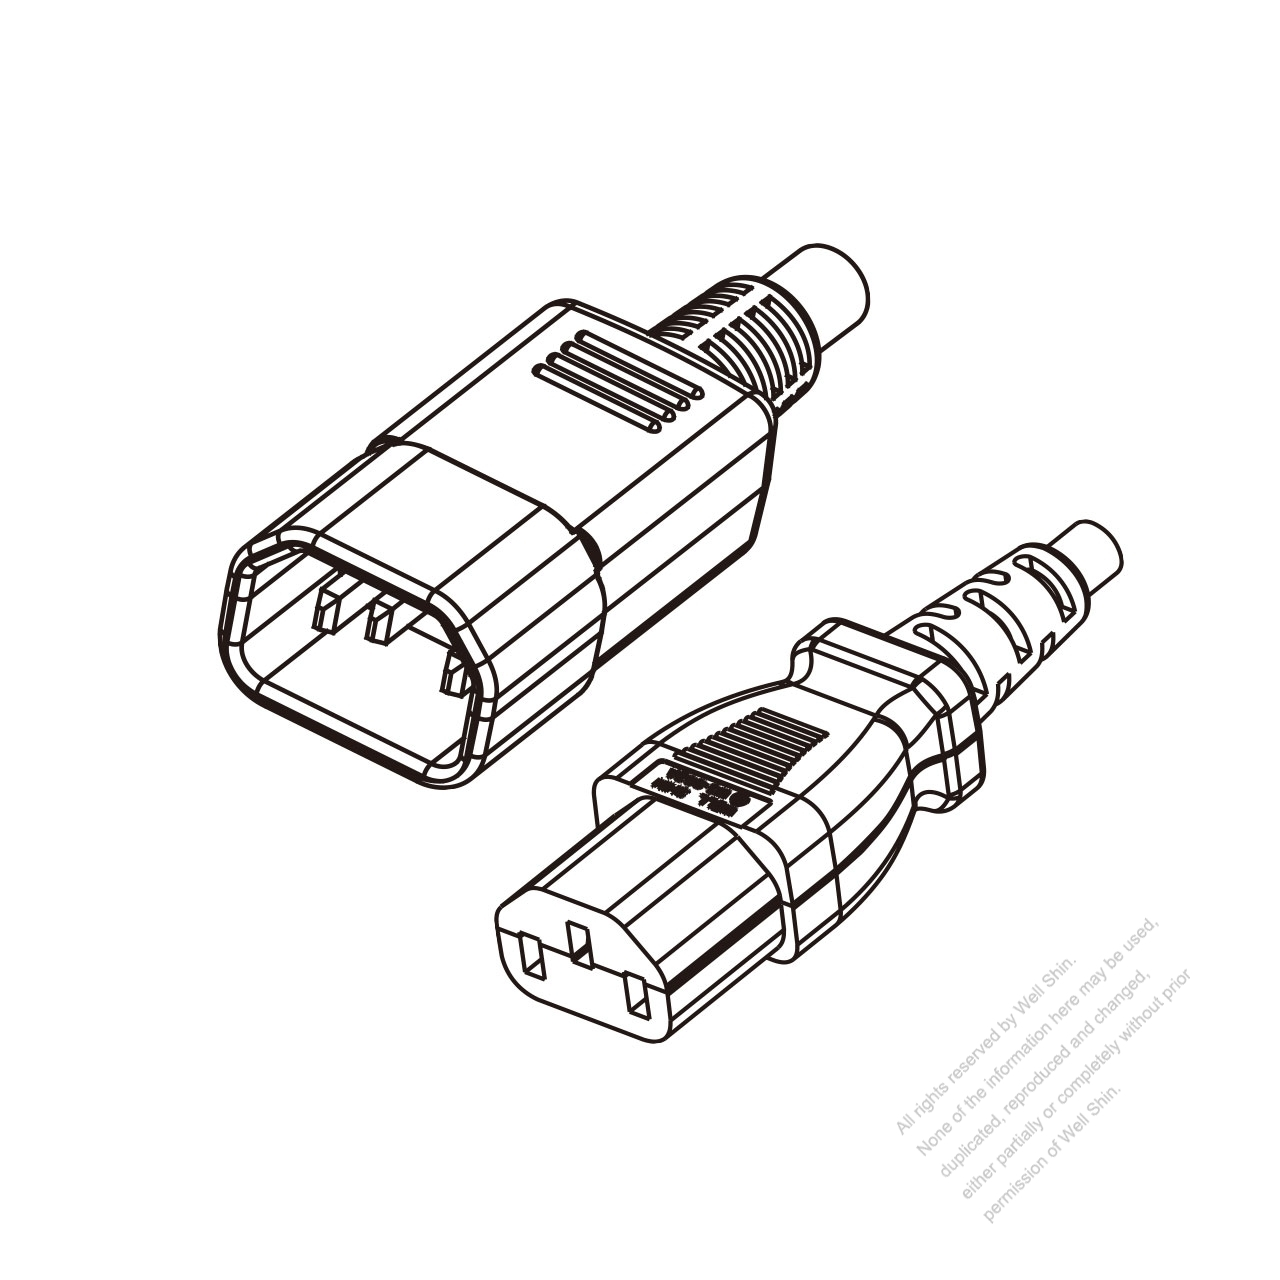 Europe 3 Pin Iec 320 Sheet E Plug To Iec 320 C13 Power